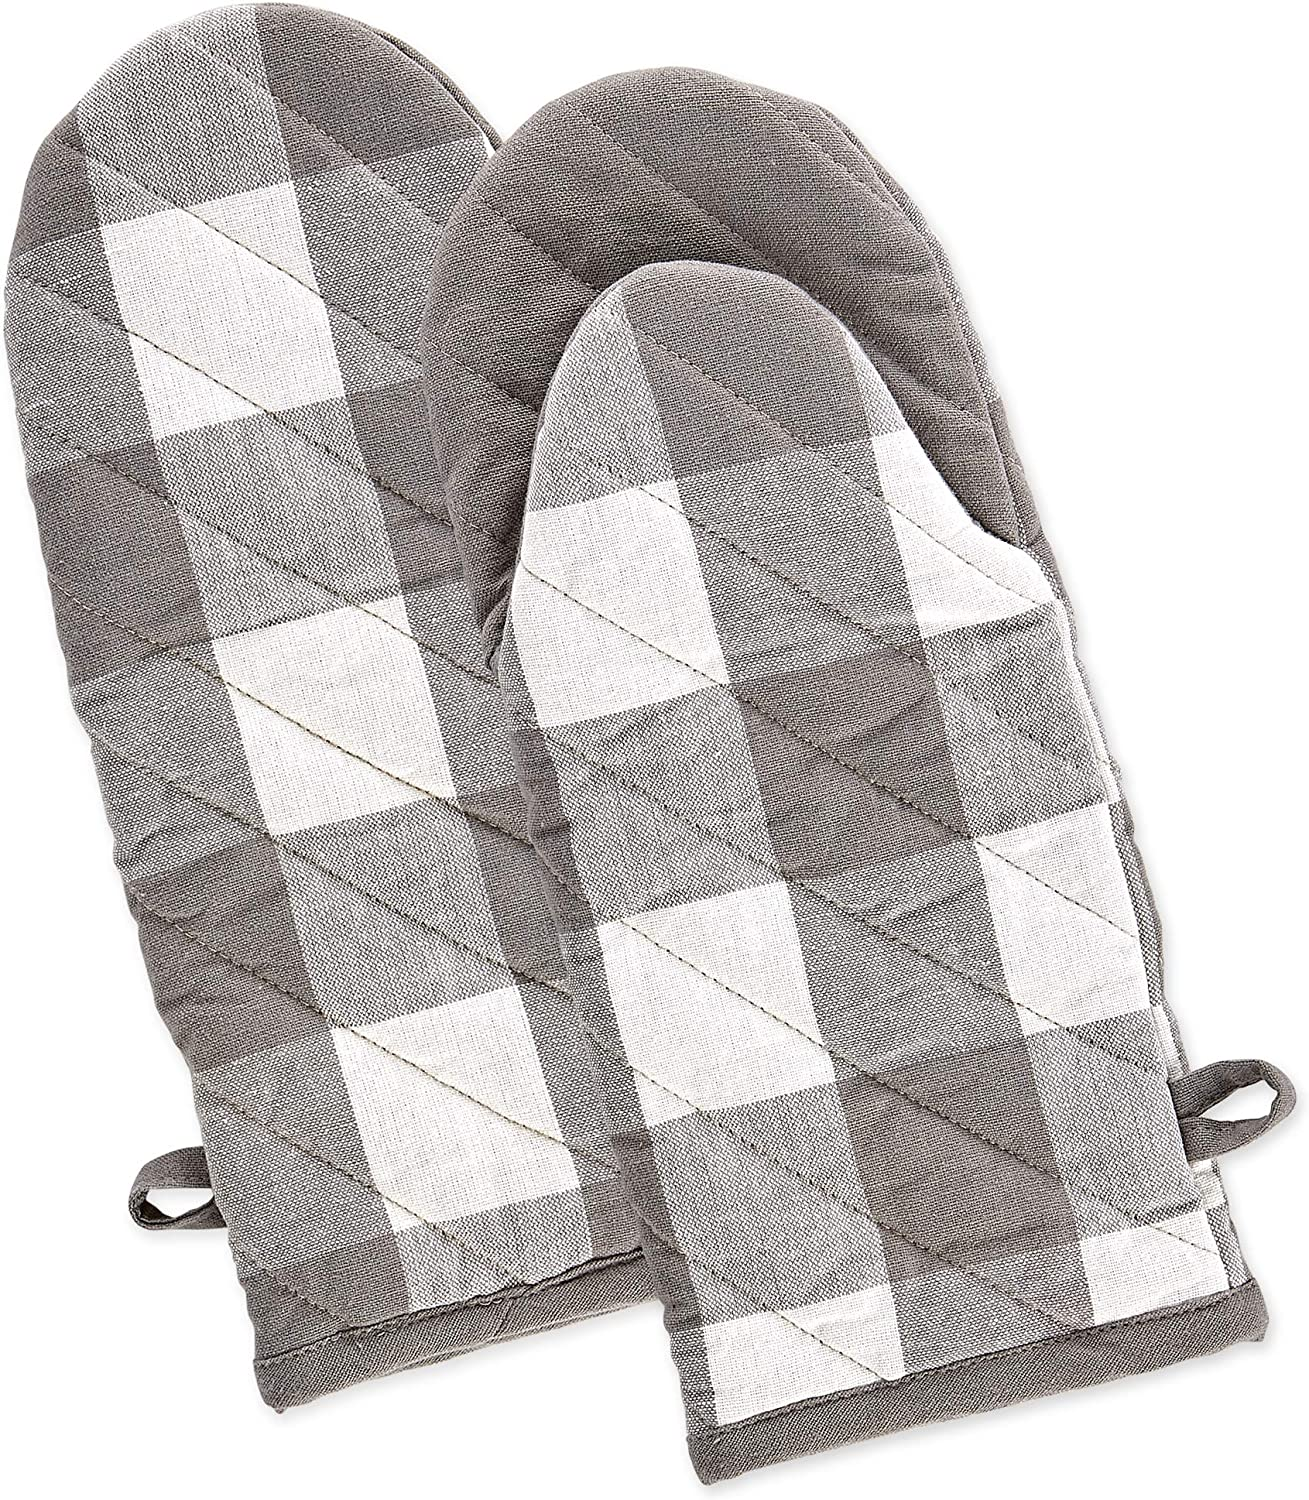 DII Buffalo Check Kitchen Collection, Oven Mitts, Gray & White 2 Piece